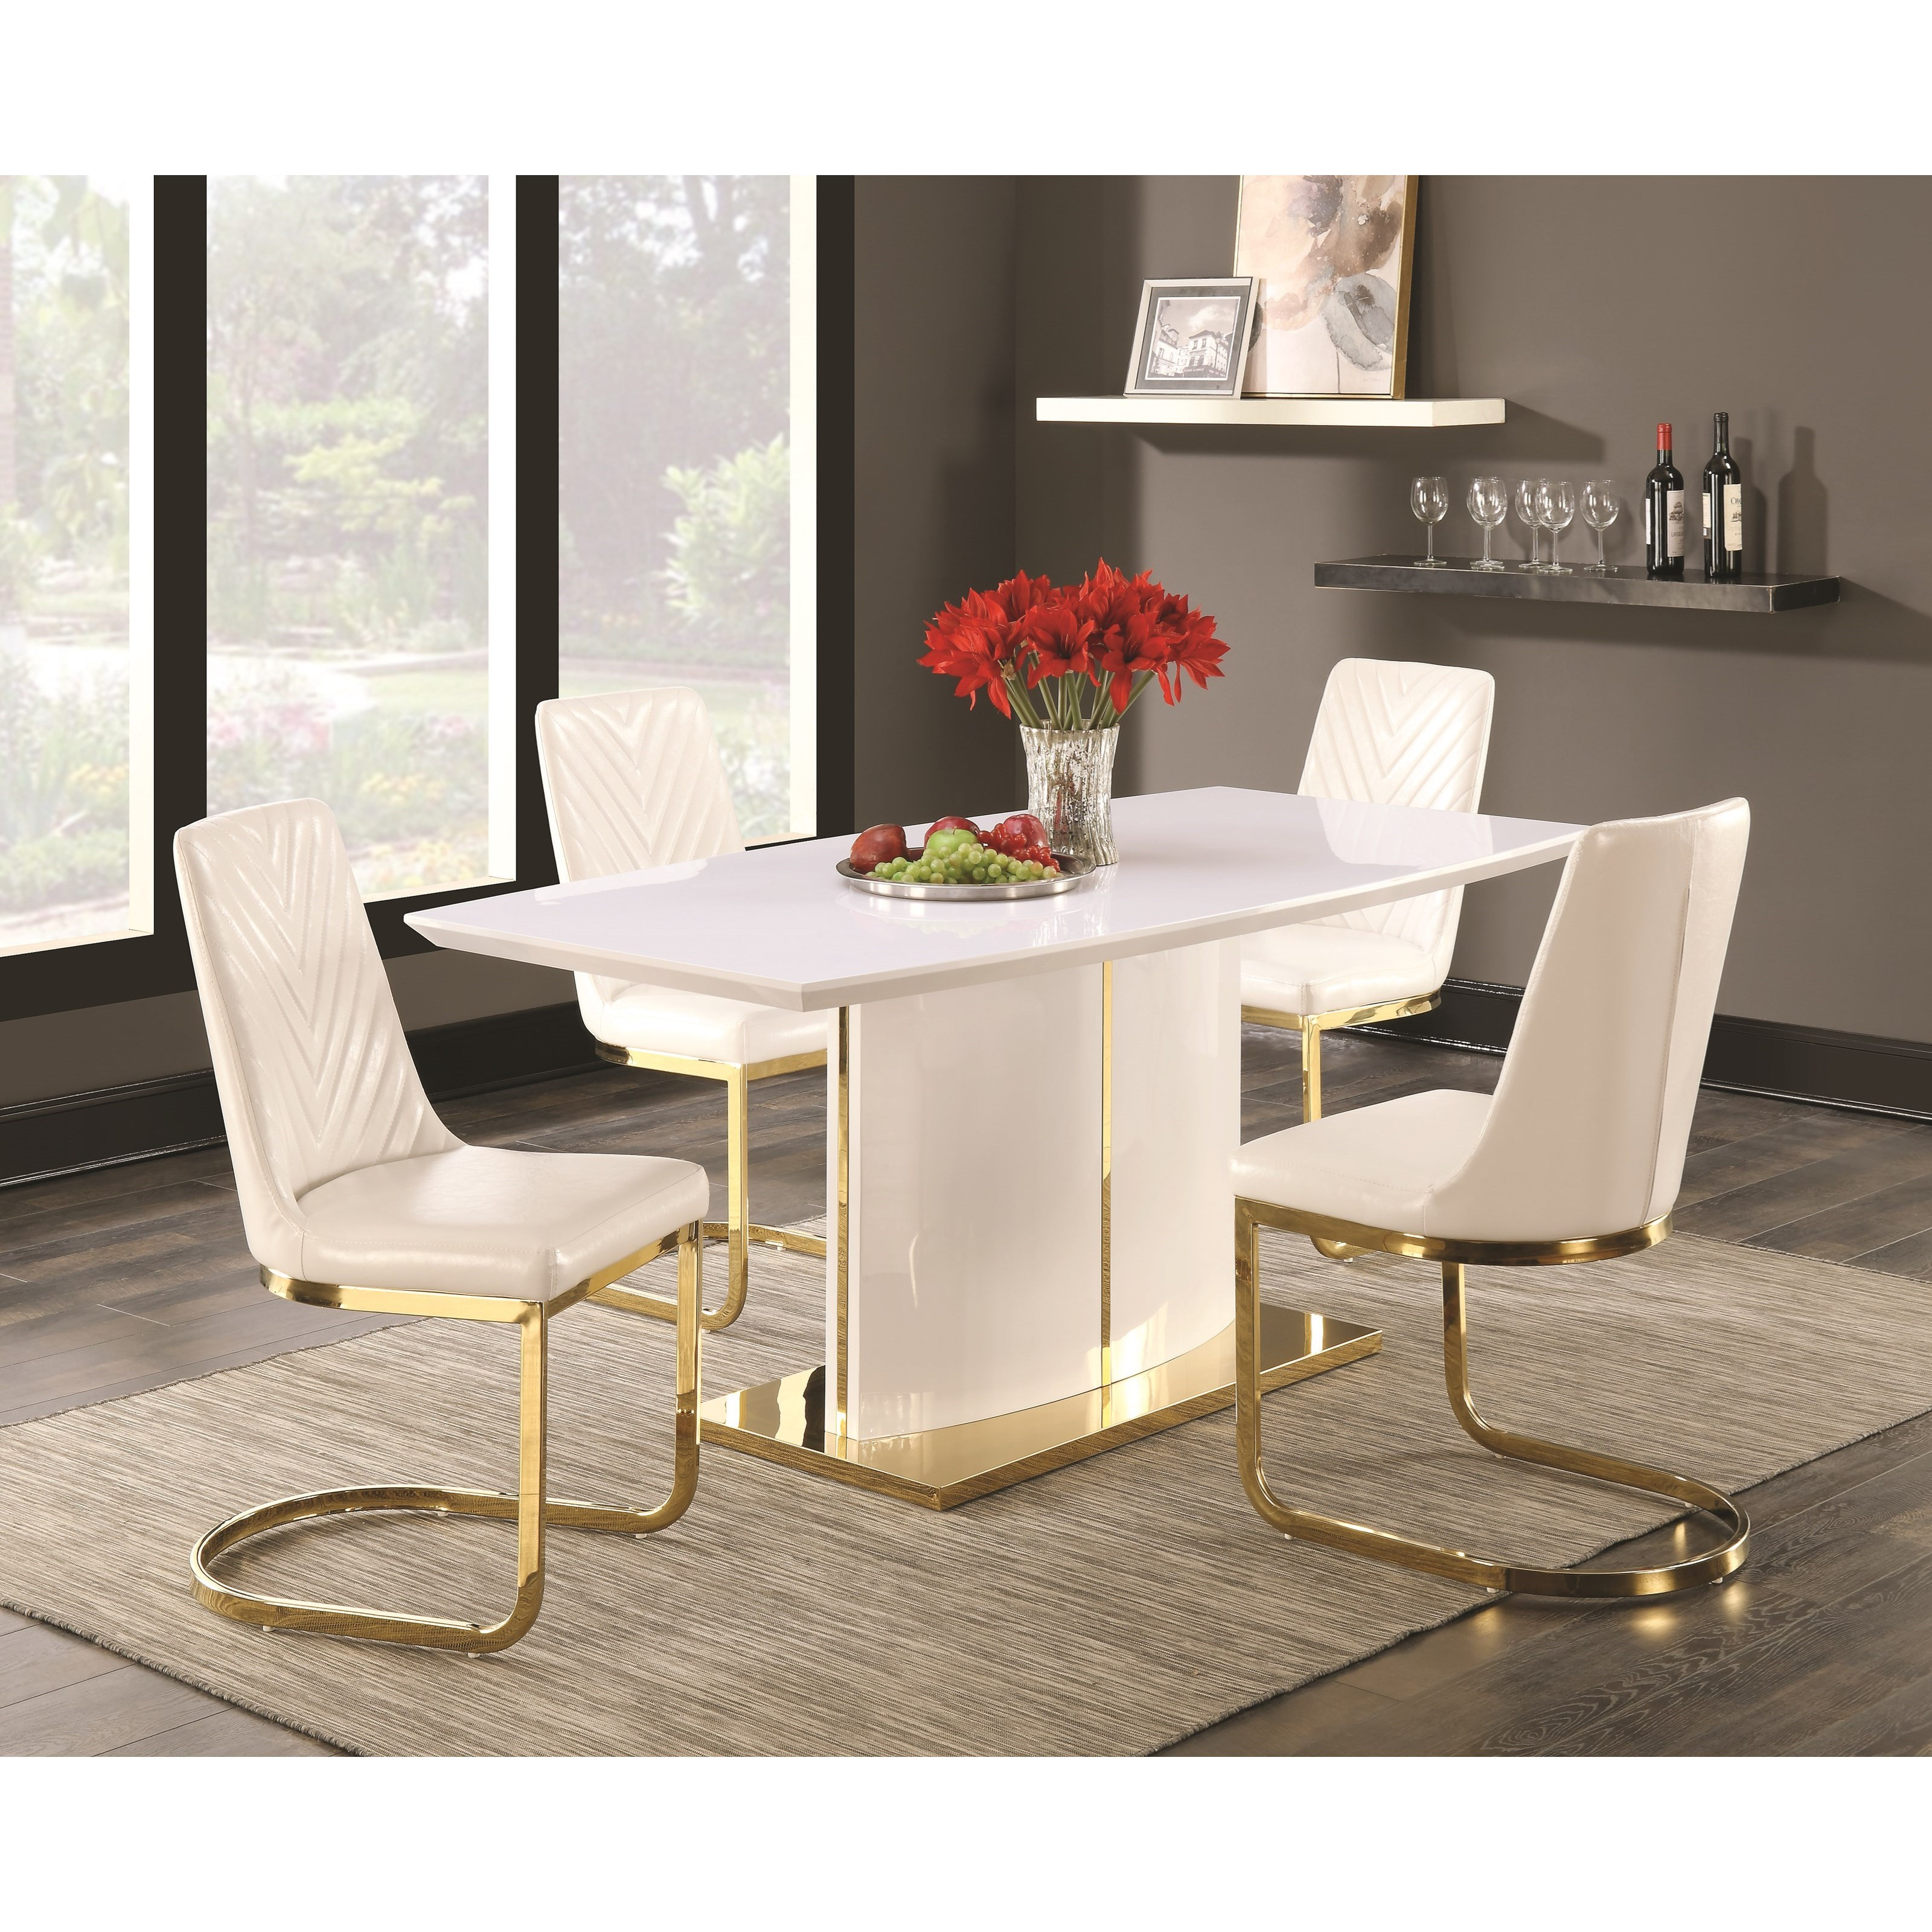 Cornelia contemporary 5 piece dining set with 24k gold detail